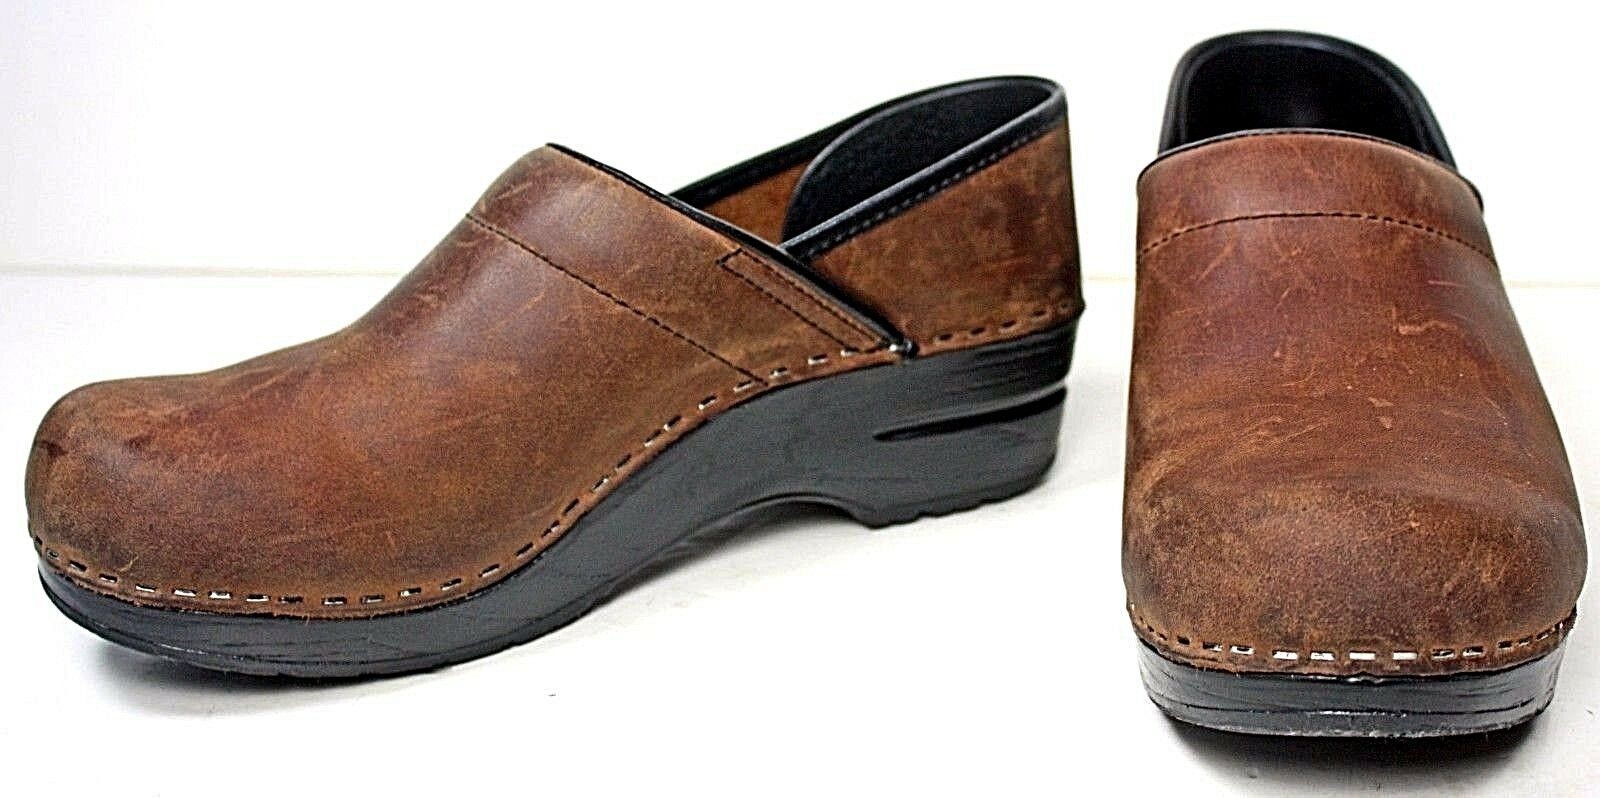 Dansko Womens Clog 8.5 - 9 M Brown Natural Leather shoes WH15